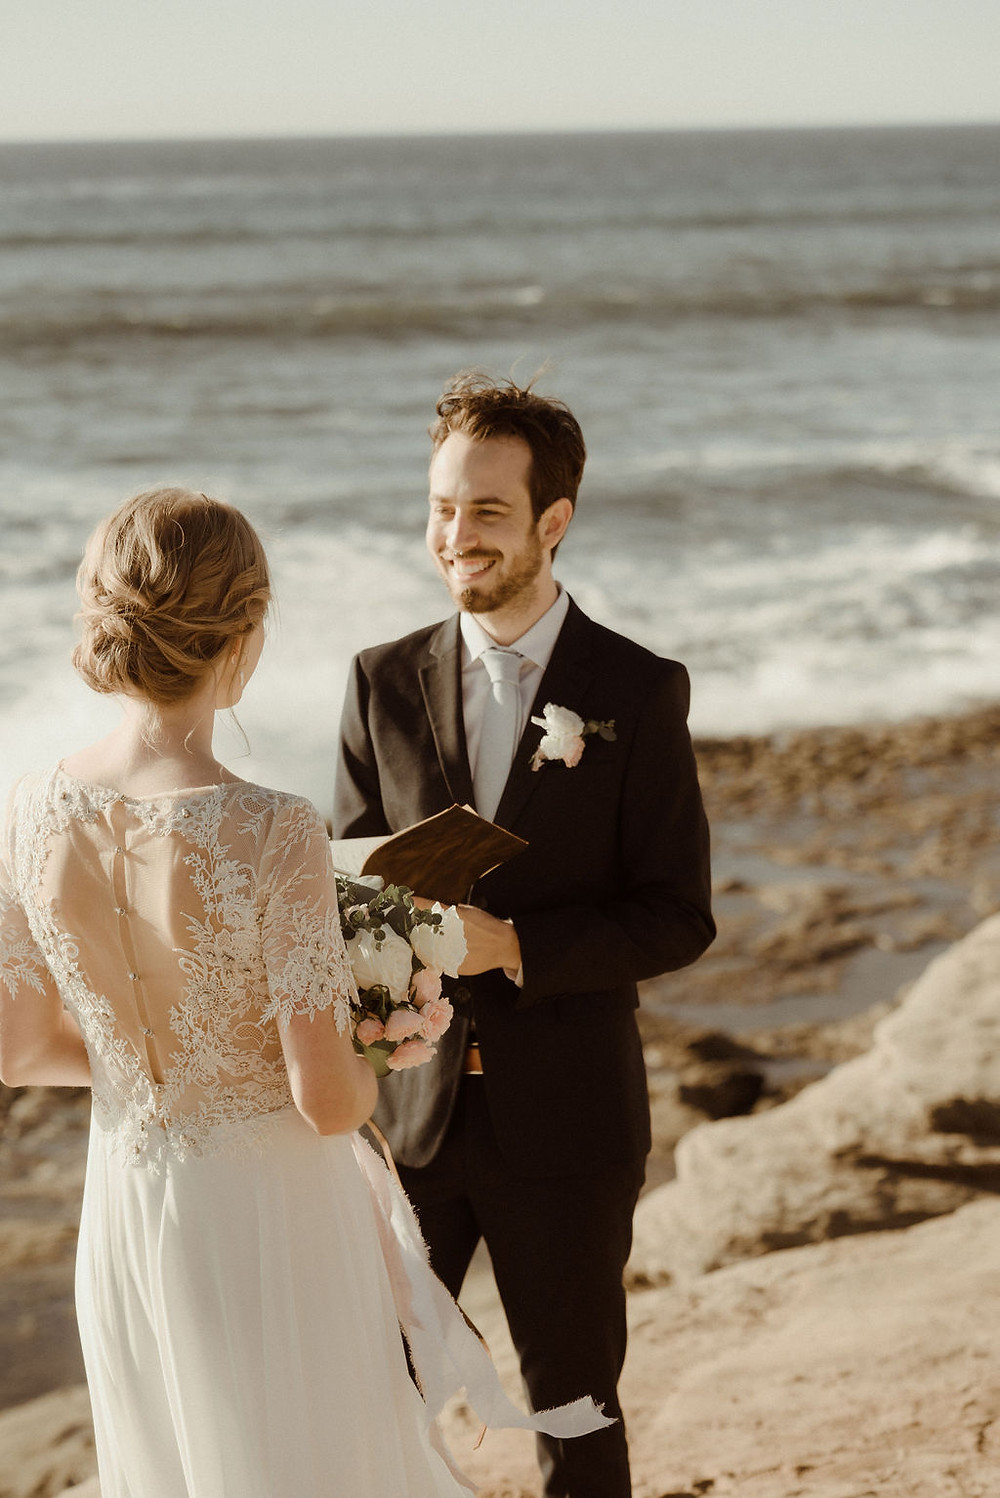 Groom smiling during the wedding ceremony